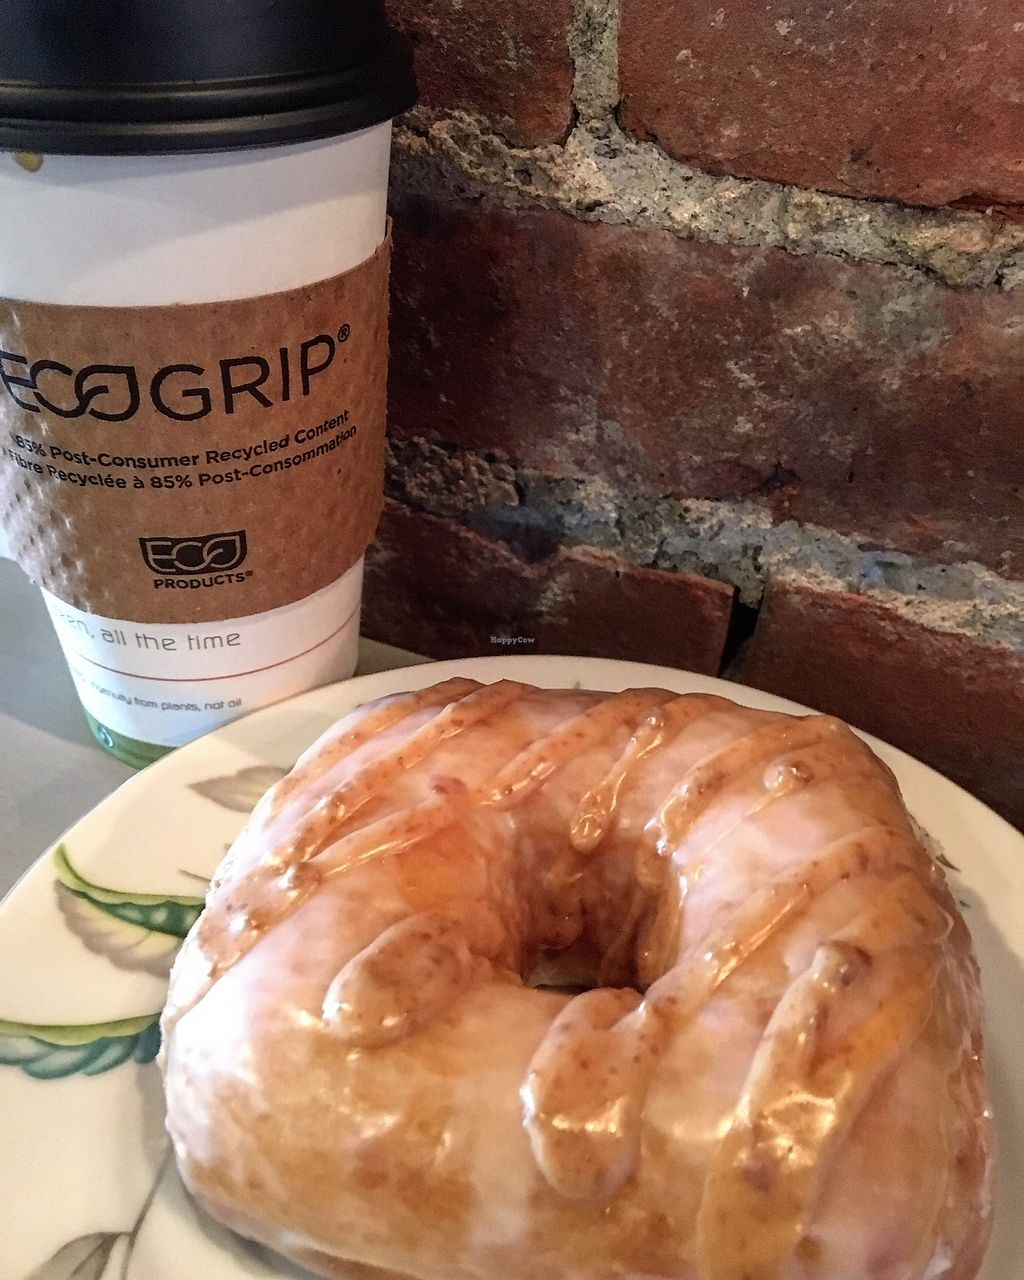 "Photo of First Village Coffee  by <a href=""/members/profile/LilMsVegan"">LilMsVegan</a> <br/>Peaceful Provisions Vegan Donuts are HEAVEN on Earth!  <br/> November 8, 2017  - <a href='/contact/abuse/image/86545/323415'>Report</a>"